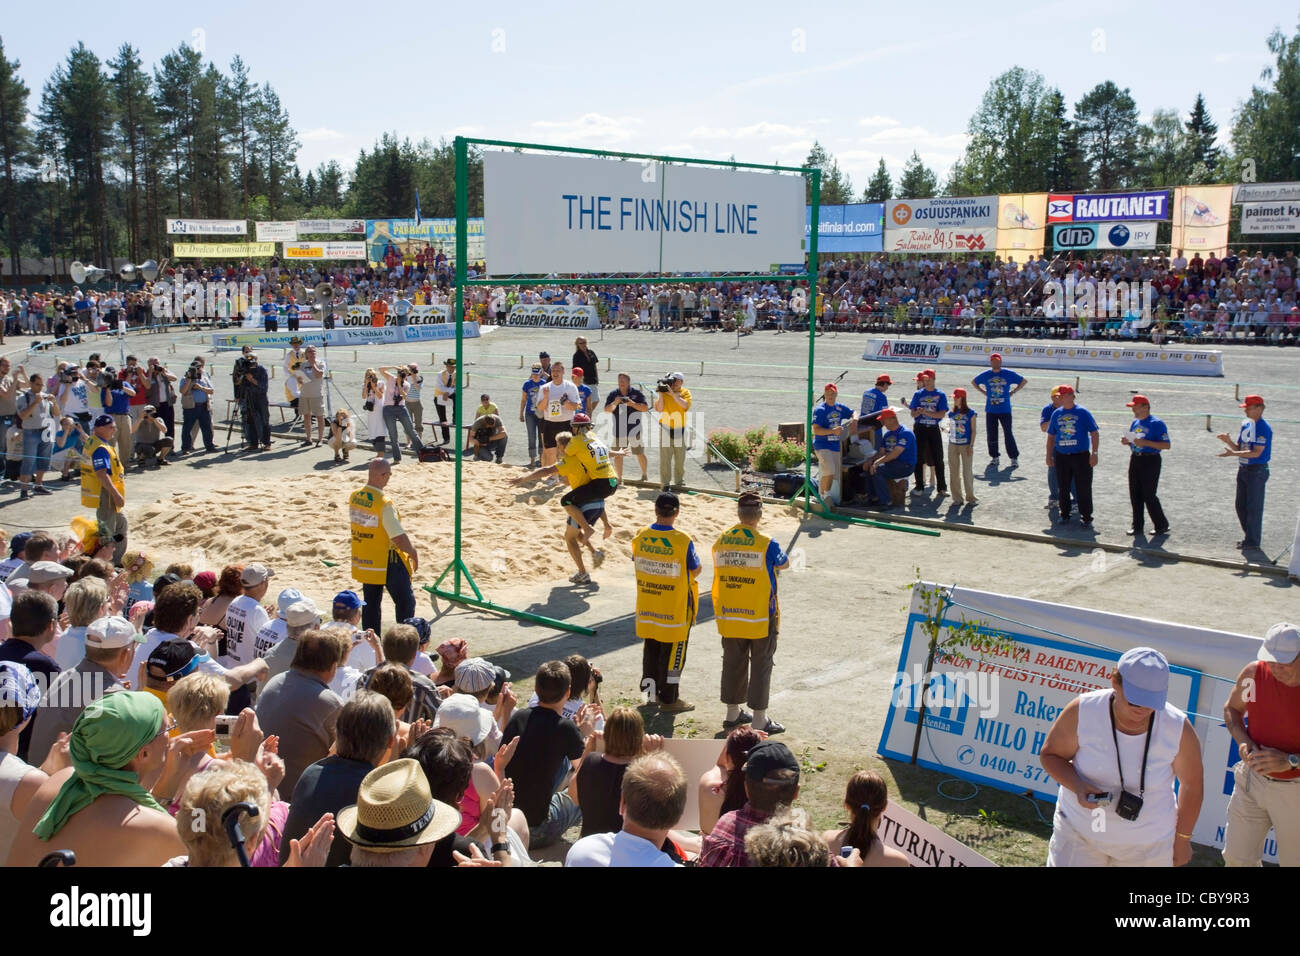 Wife Carrying World Championships at Sonkajärvi, Finland - Stock Image